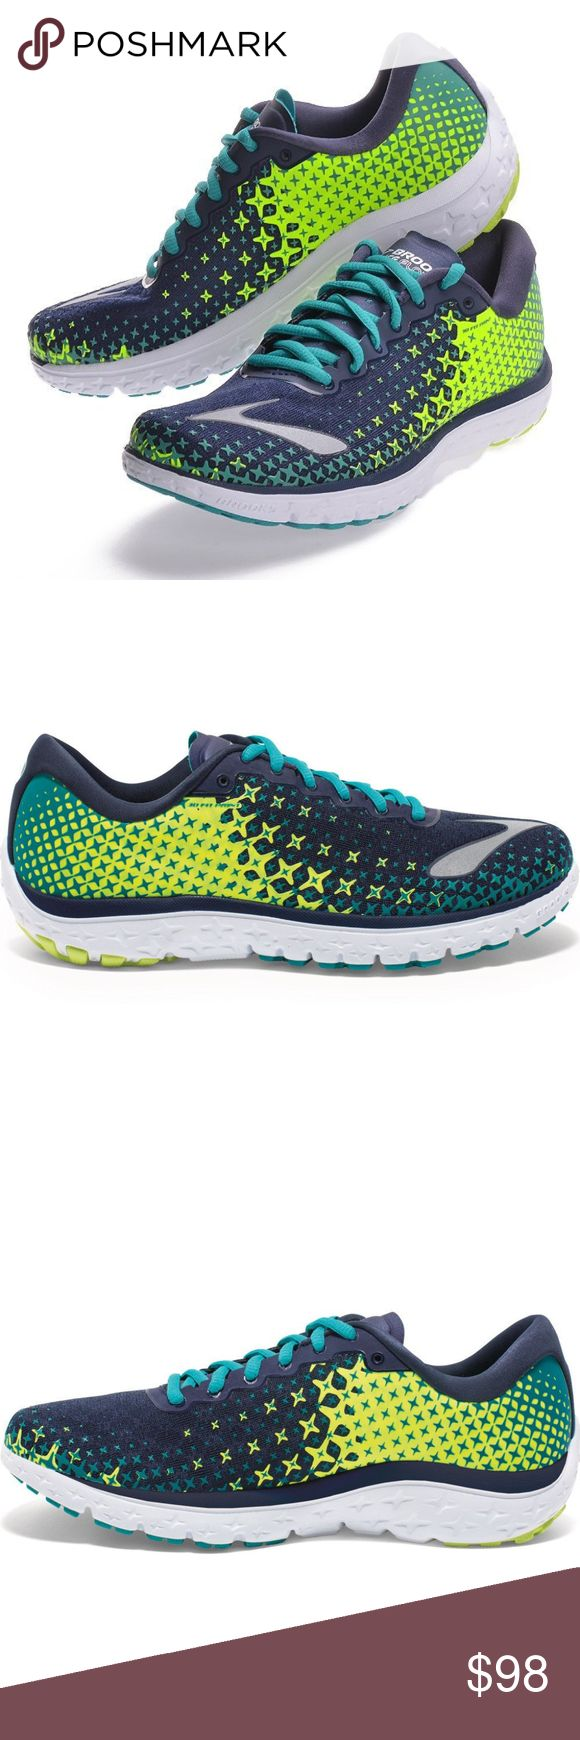 Brooks Women's PureFlow 5 Running Shoe Size 8 If you're looking for a lightweight, agile ride that matches you stride for stride, you've gotta check out the Women's Brooks® PureFlow 5. Fall in love with the well-cushioned yet super lightweight, hyper flexible ride of this shoe that has the perfect amount of cush while managing to keep a low weight. Comfort Collar: Offers extra cushion and comfort Anatomical Last mimics the shape of the foot: Provides close support and a glove-like feel and…